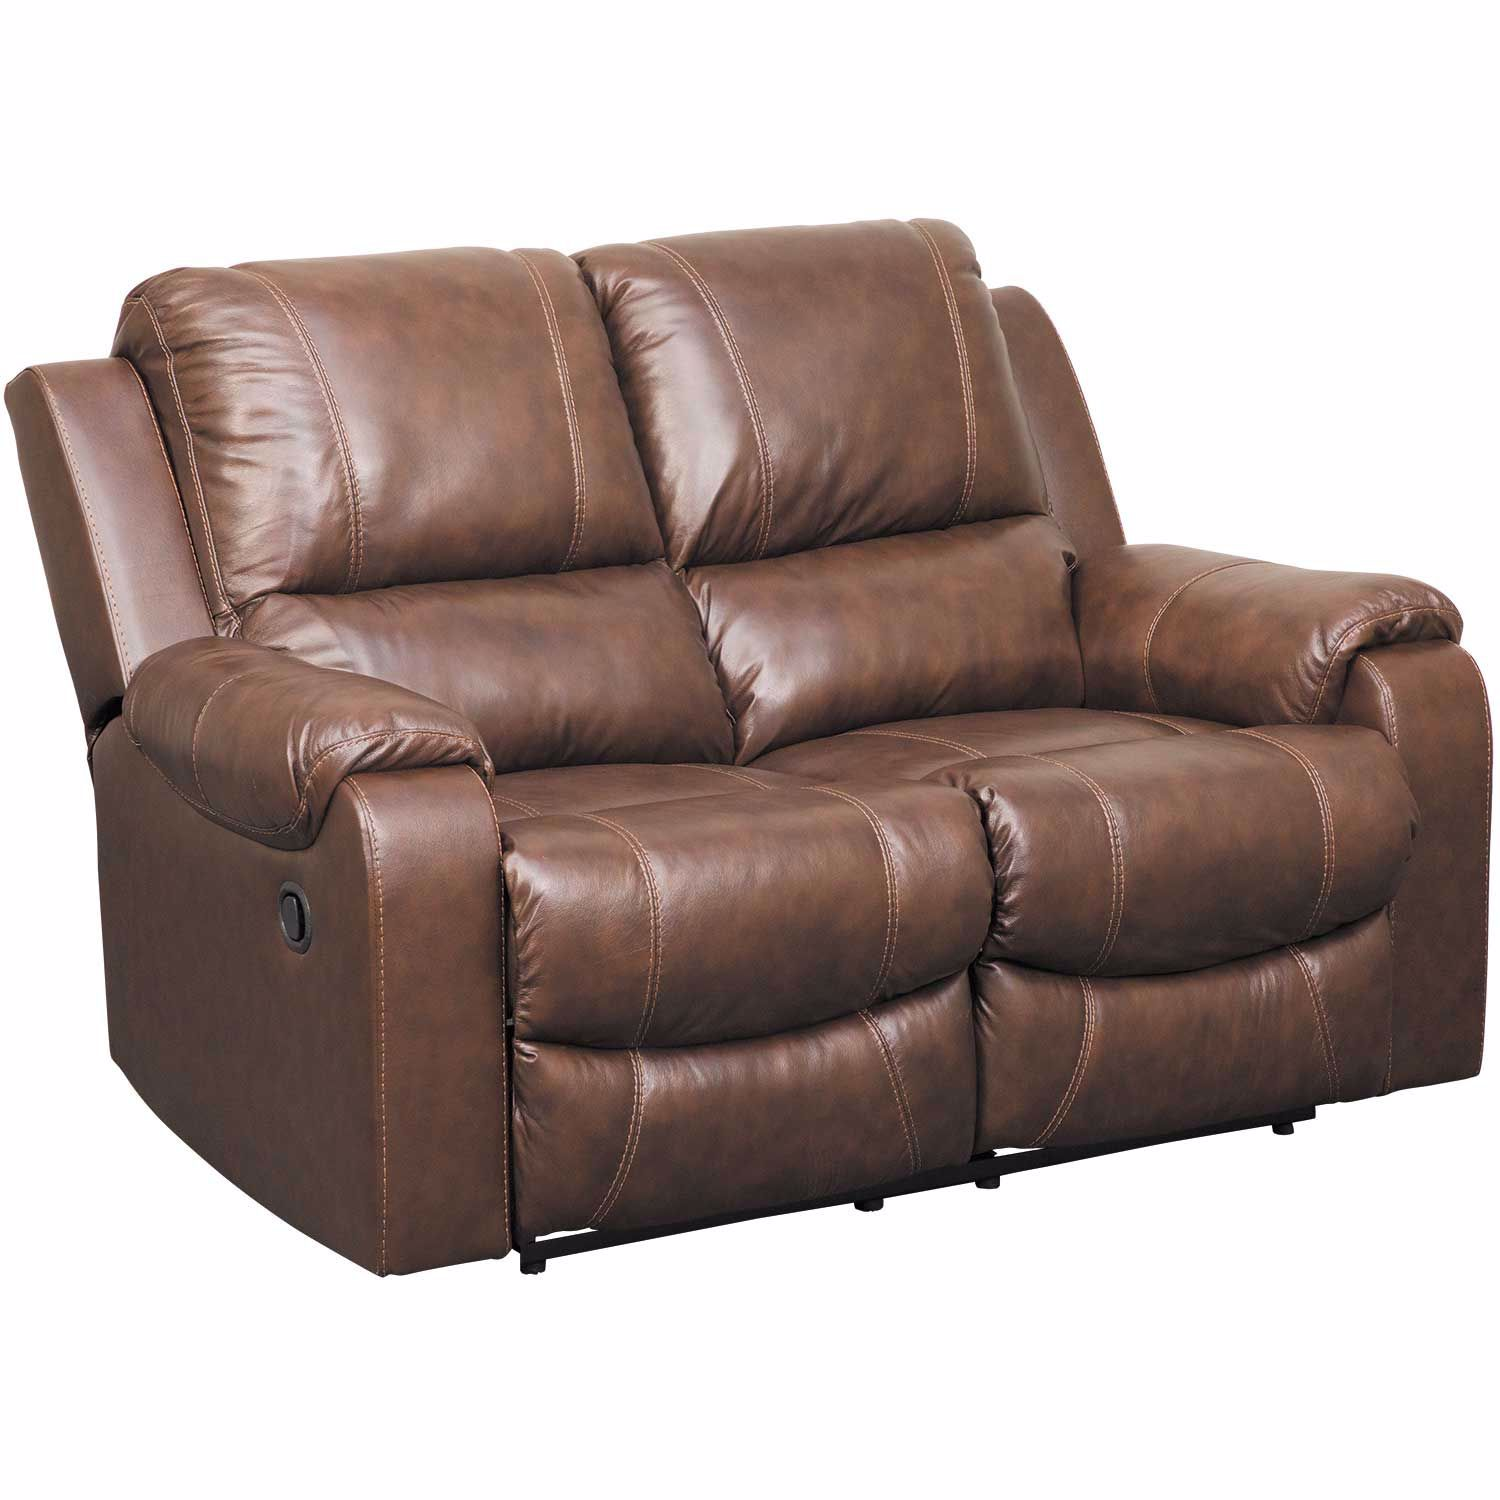 Picture of Rackingburg Mahogany Leather Reclining Loveseat